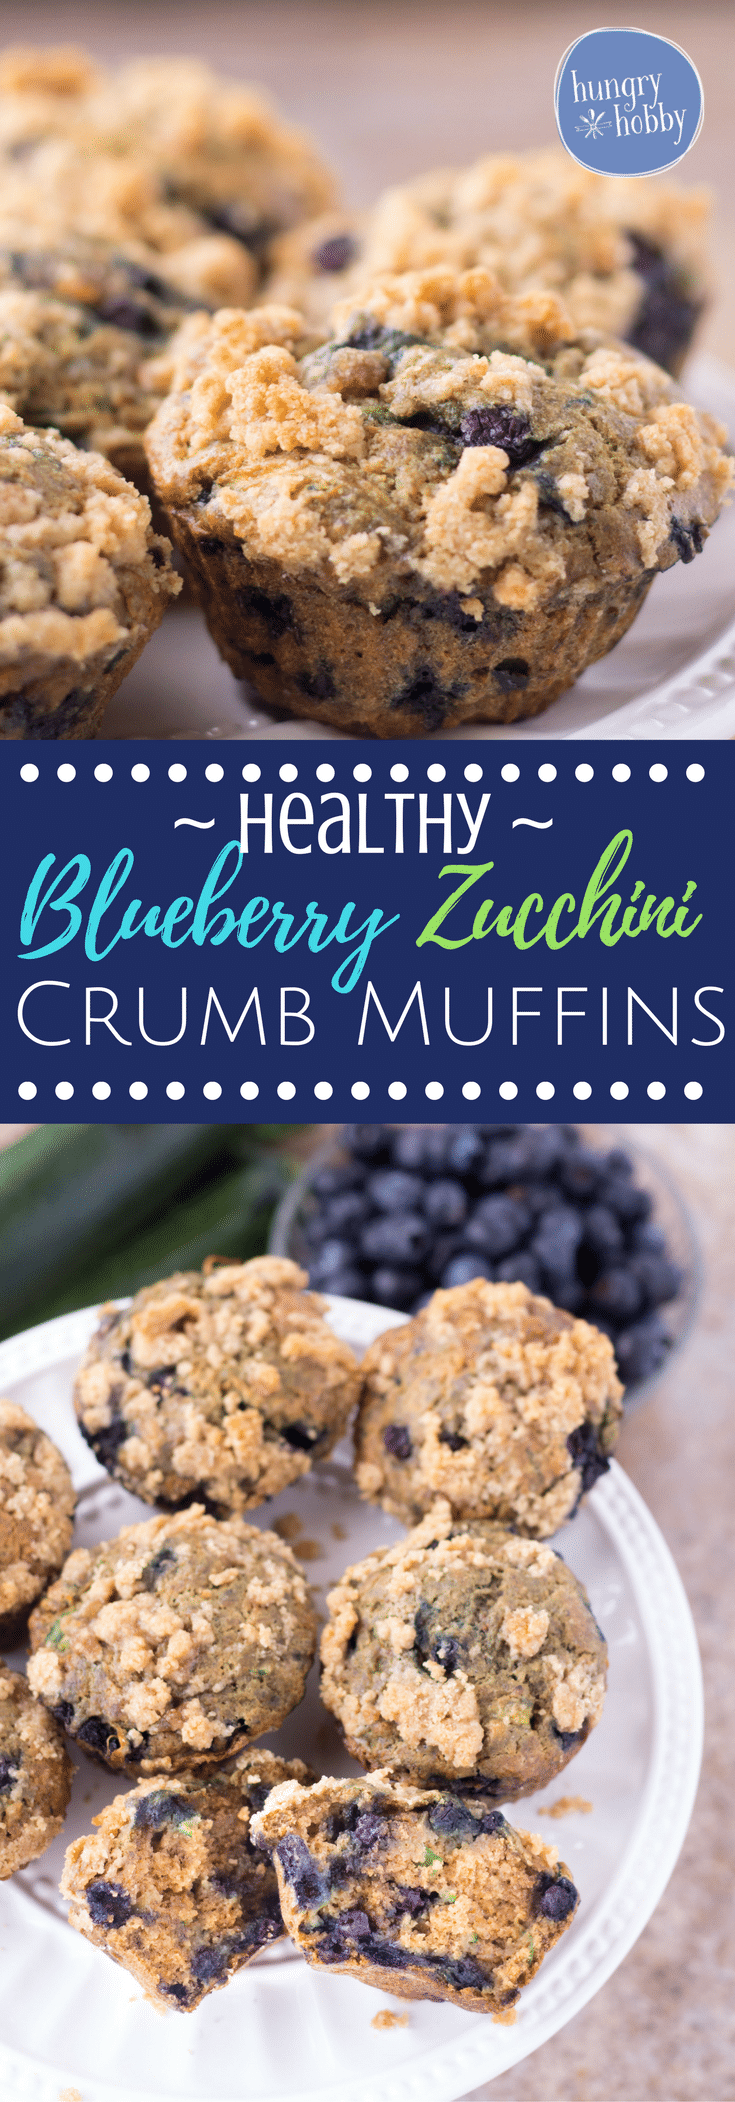 These healthy blueberry zucchini muffins are bursting with warm freshly baked blueberries and a sweet crumb topping, you'd never guess they contain a vegetable!